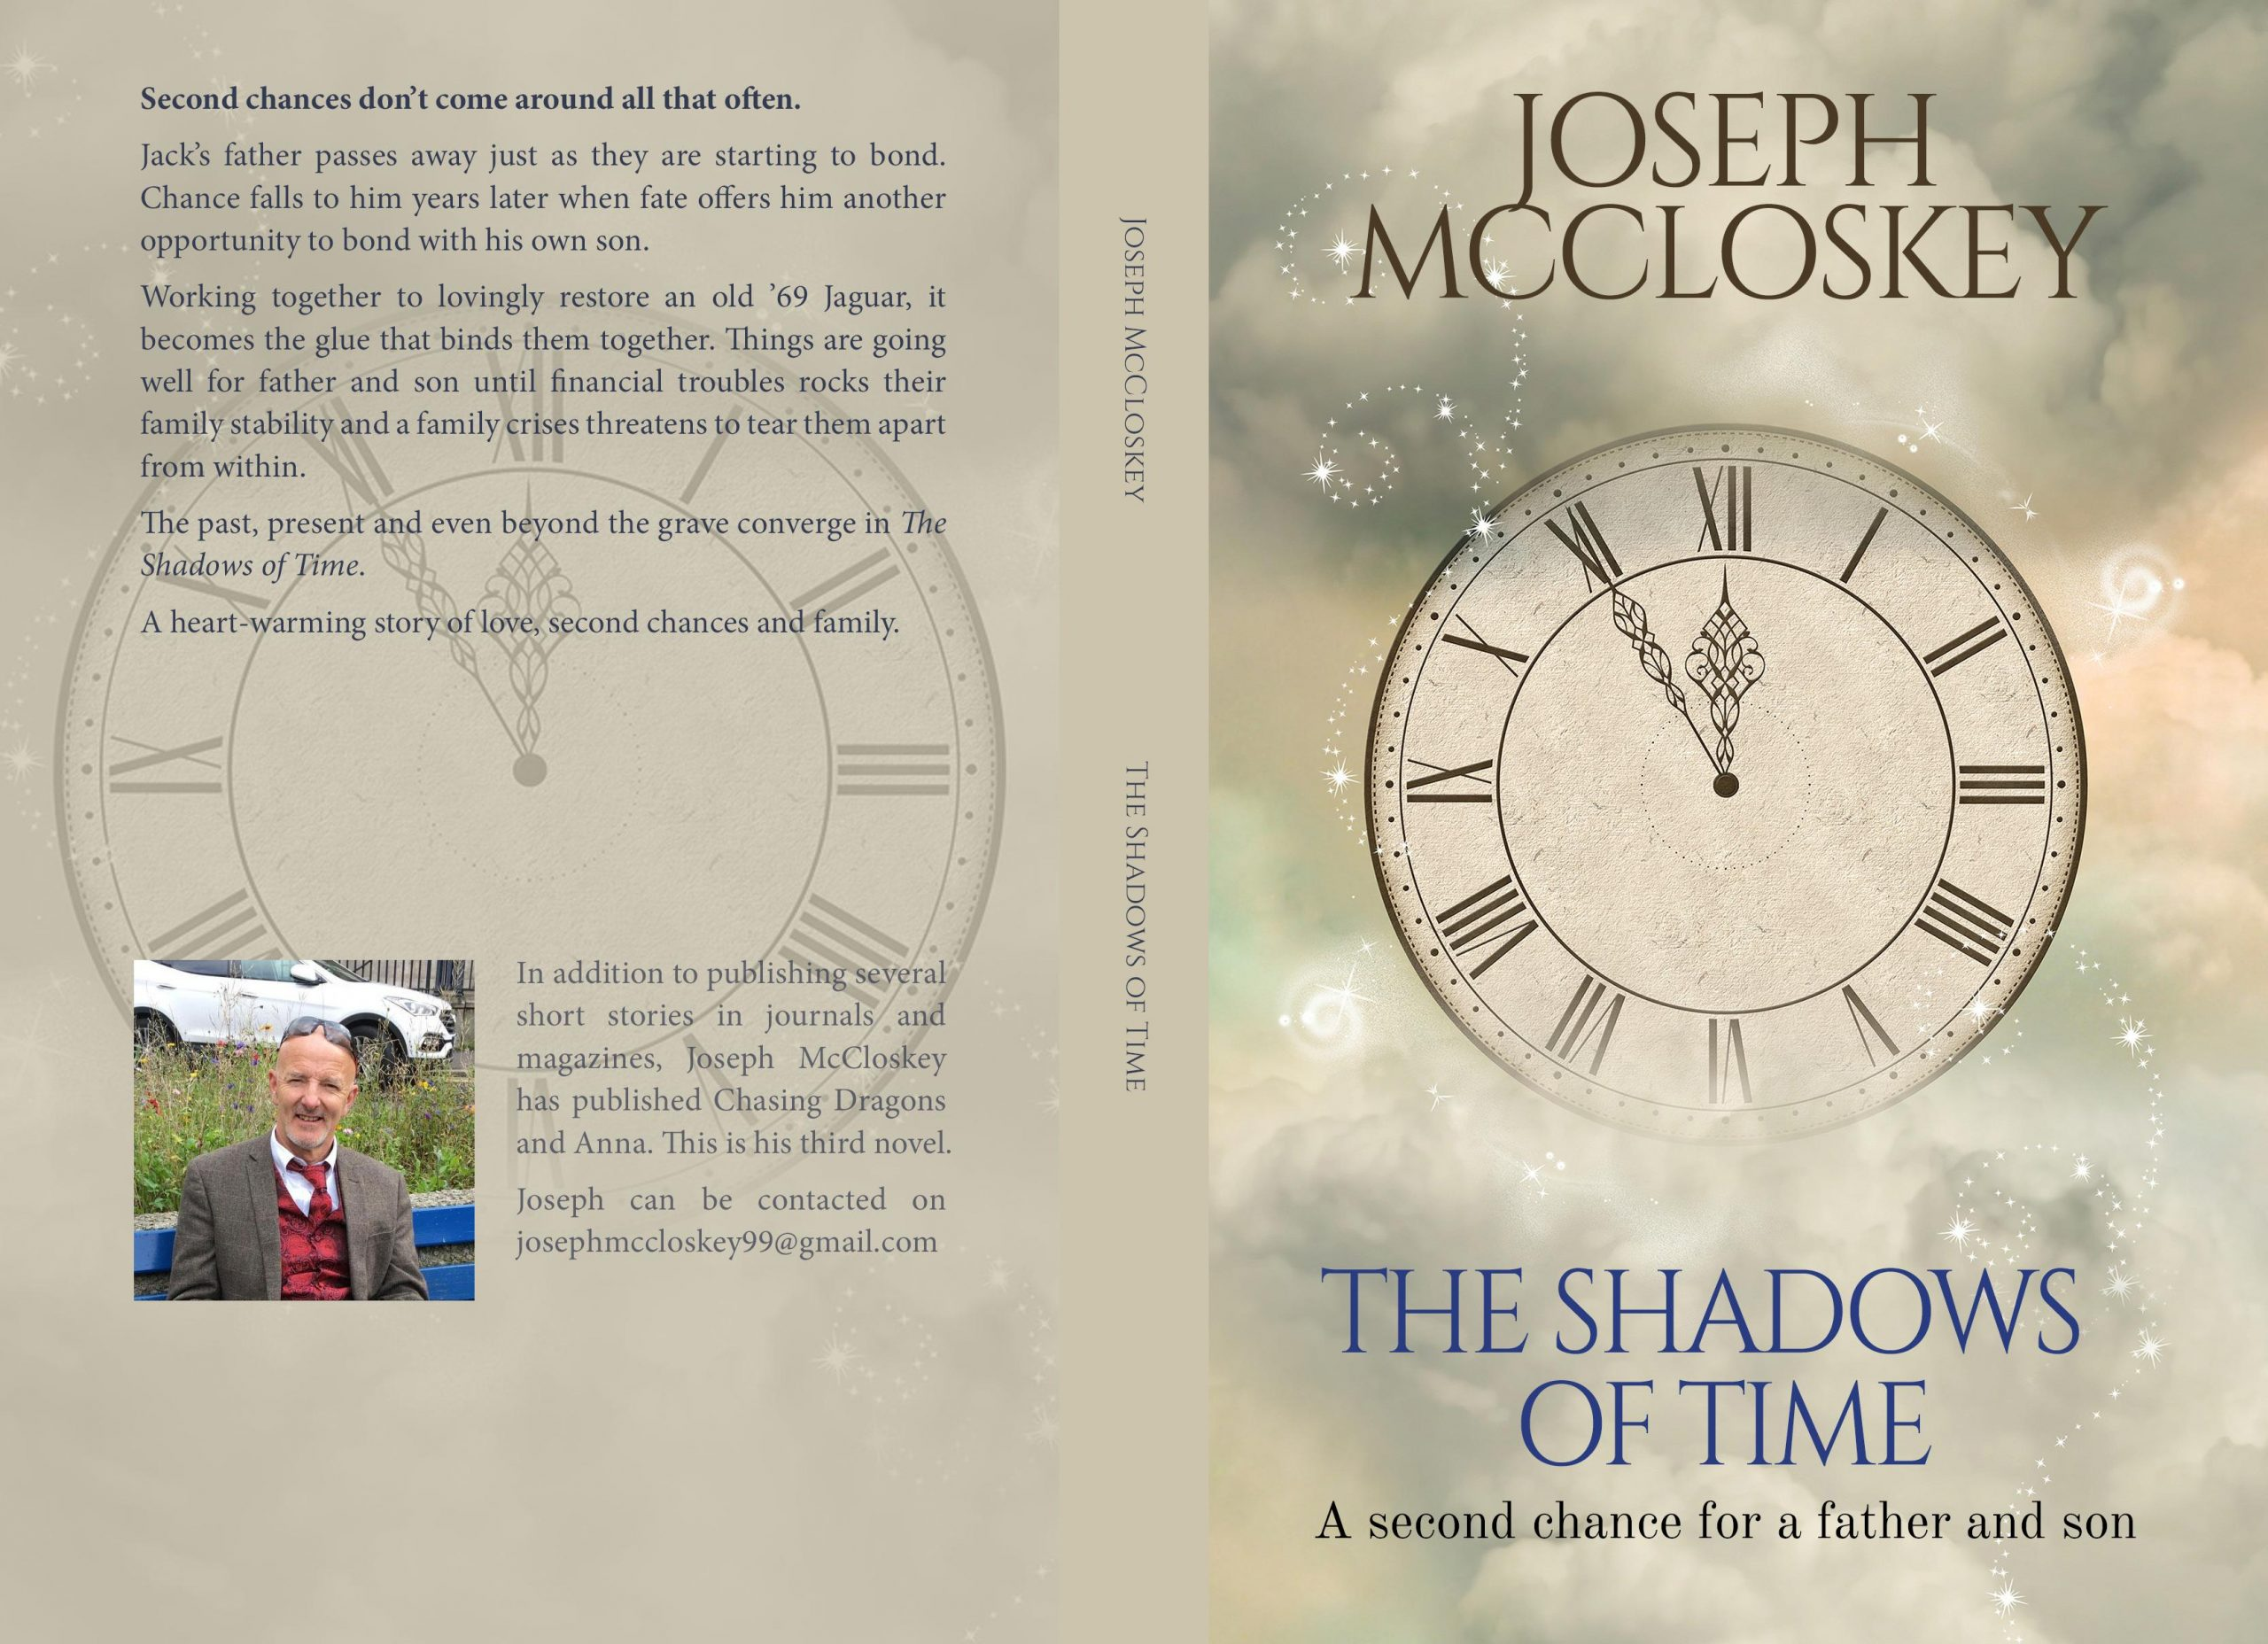 The shadows of time